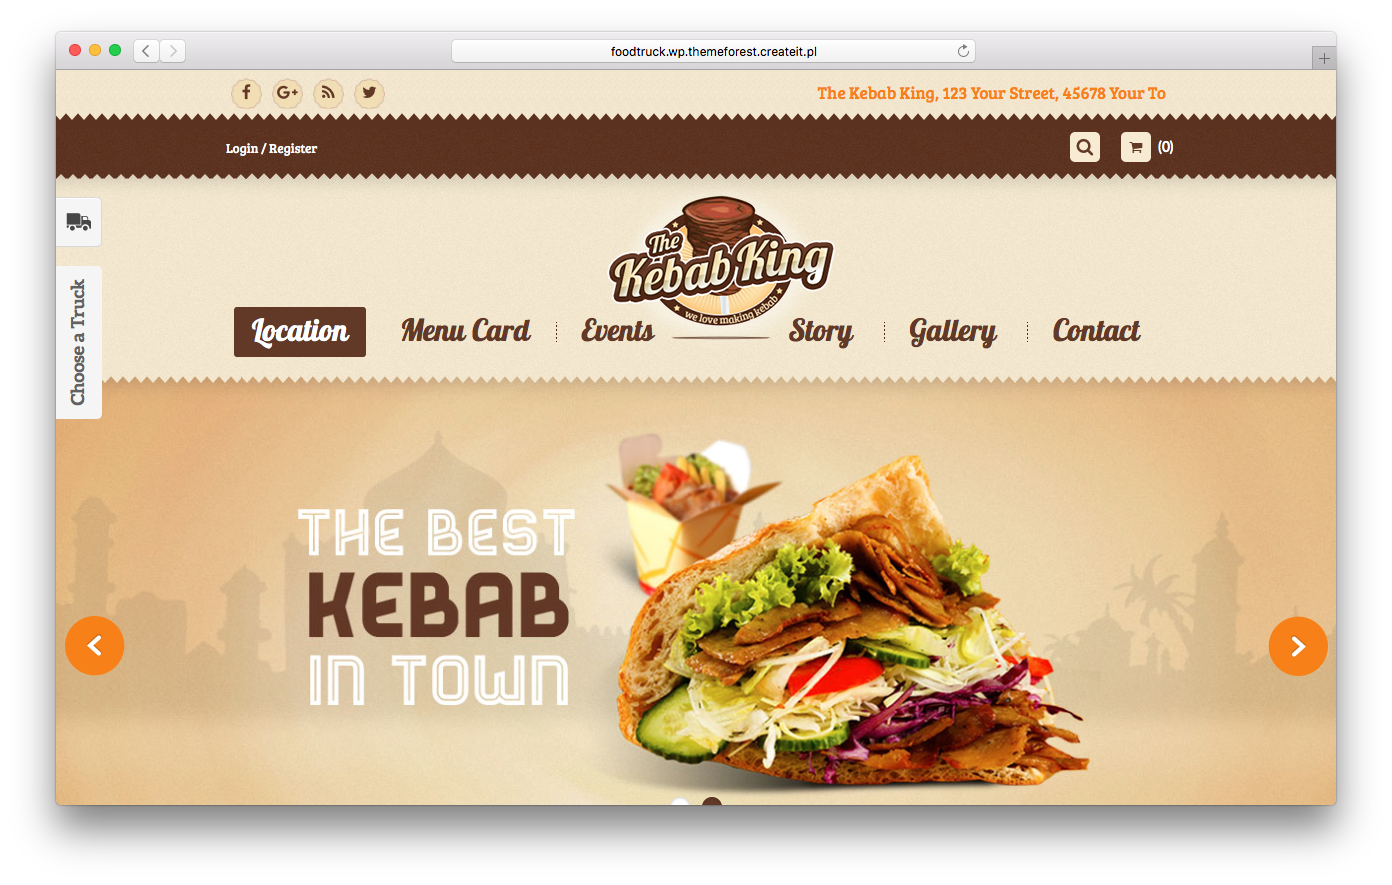 FoodTruck is a great WordPress restaurant theme with a geolocation feature.